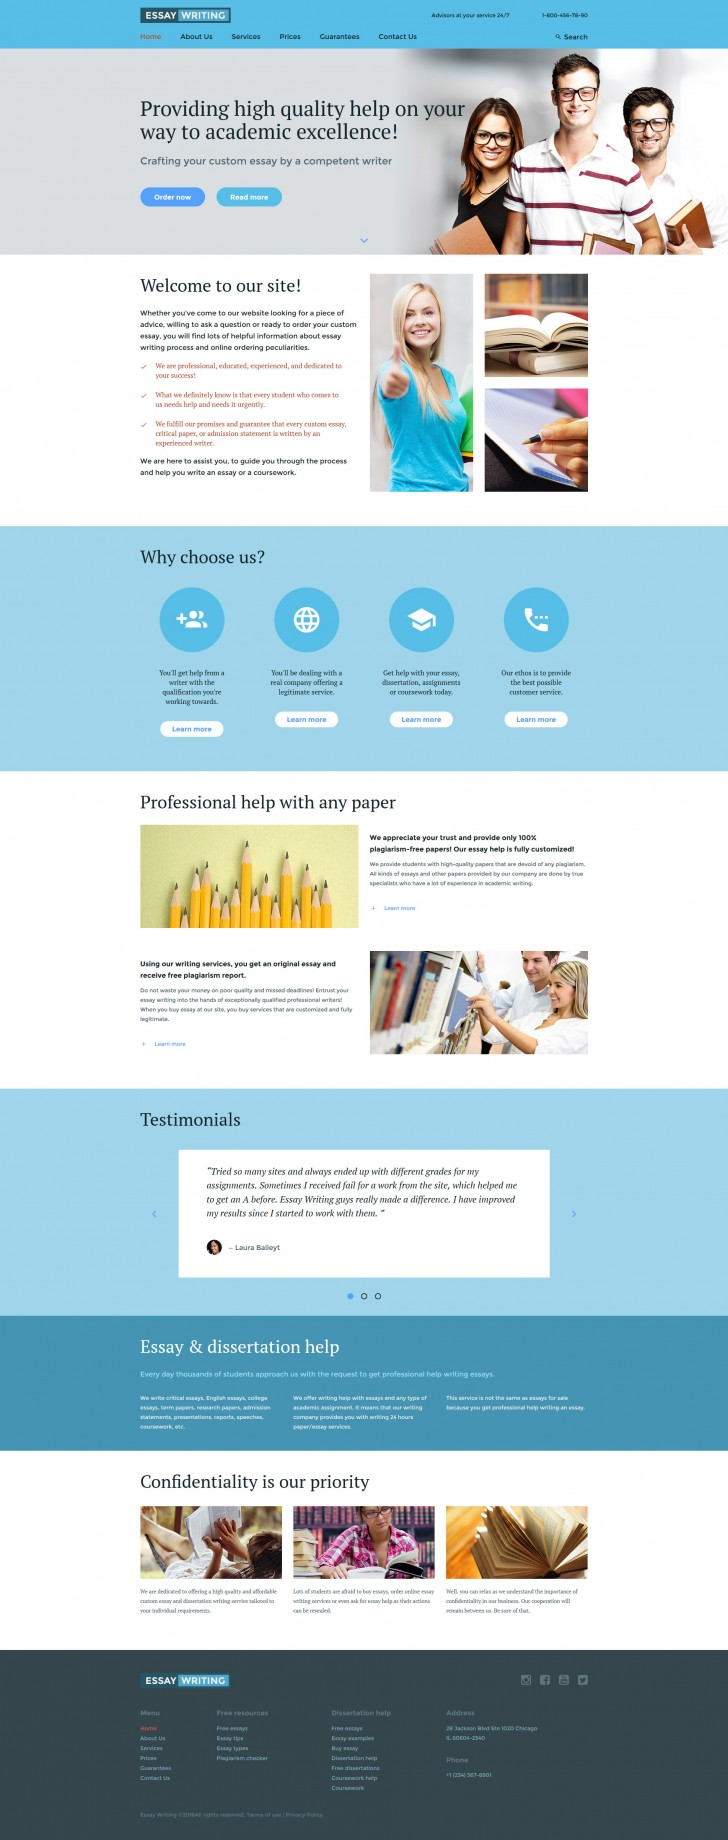 003 Essay Example Writing Website Template 59201 Amazing Websites Reviews Free 728